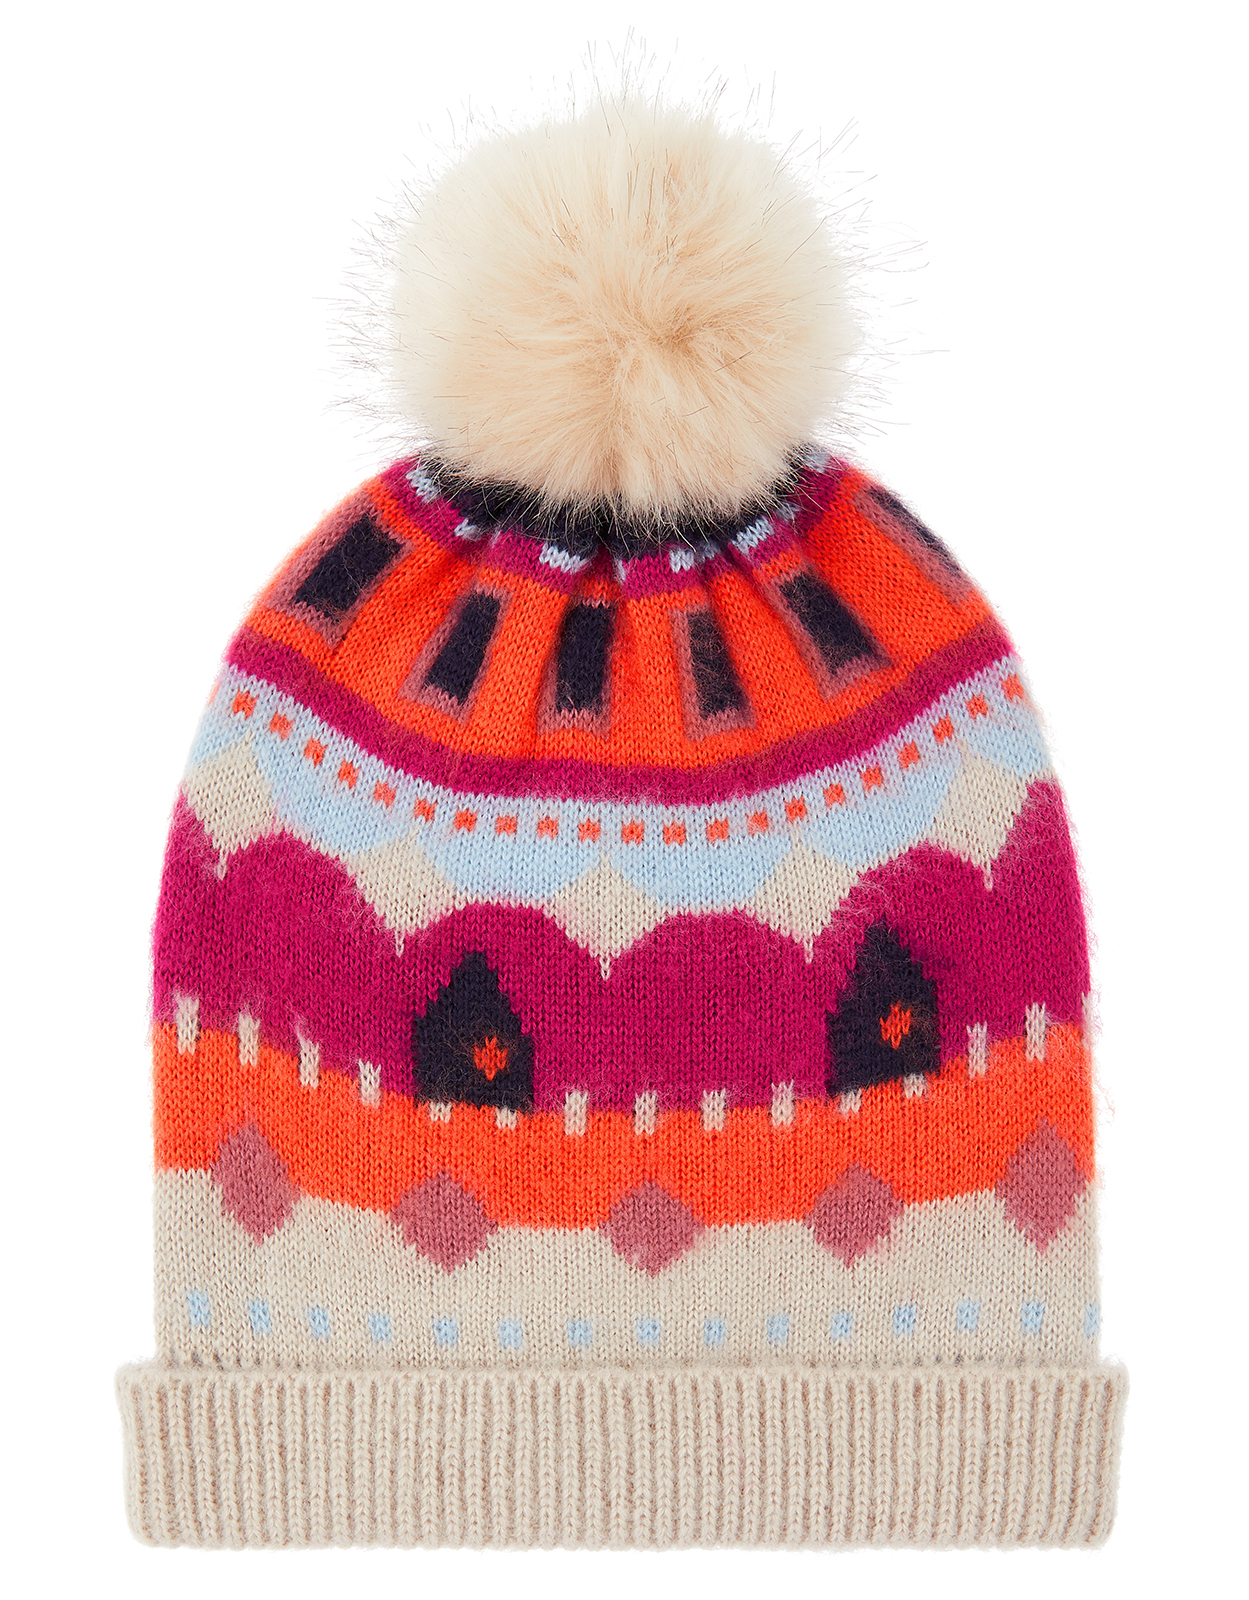 Monsoon Bibi Bright Fair Isle Knit Beanie Hat